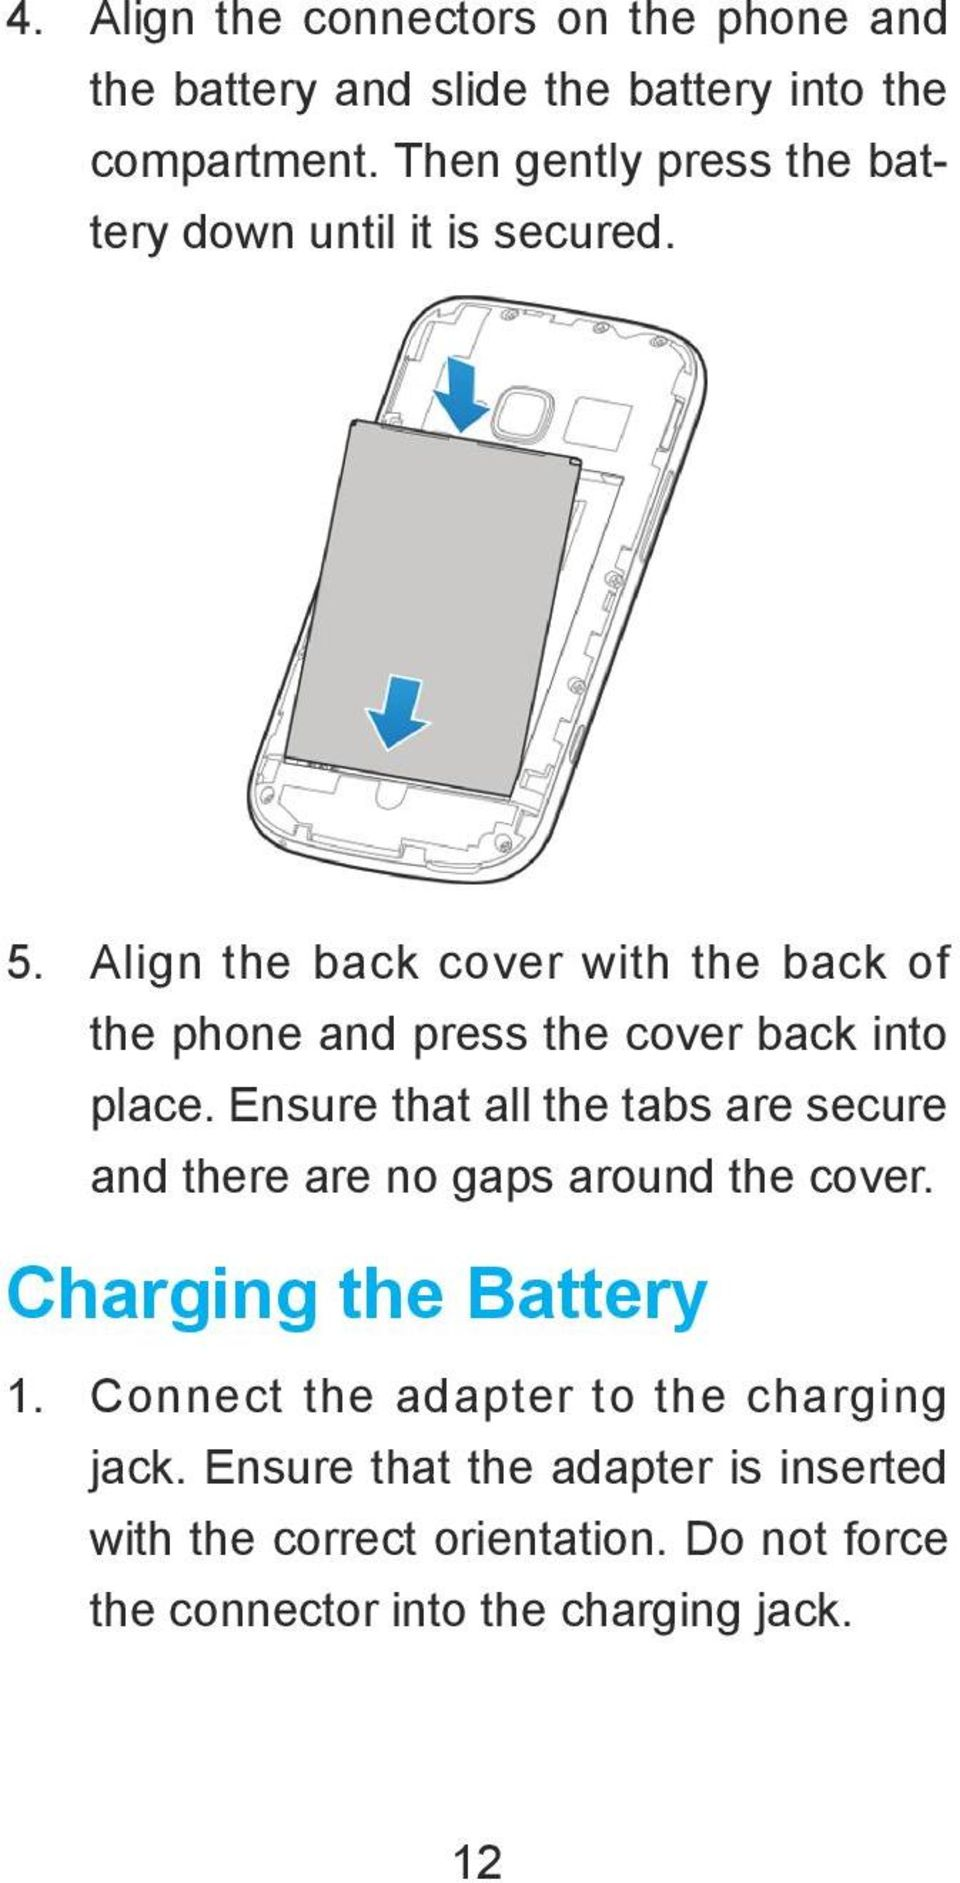 Align the back cover with the back of the phone and press the cover back into place.